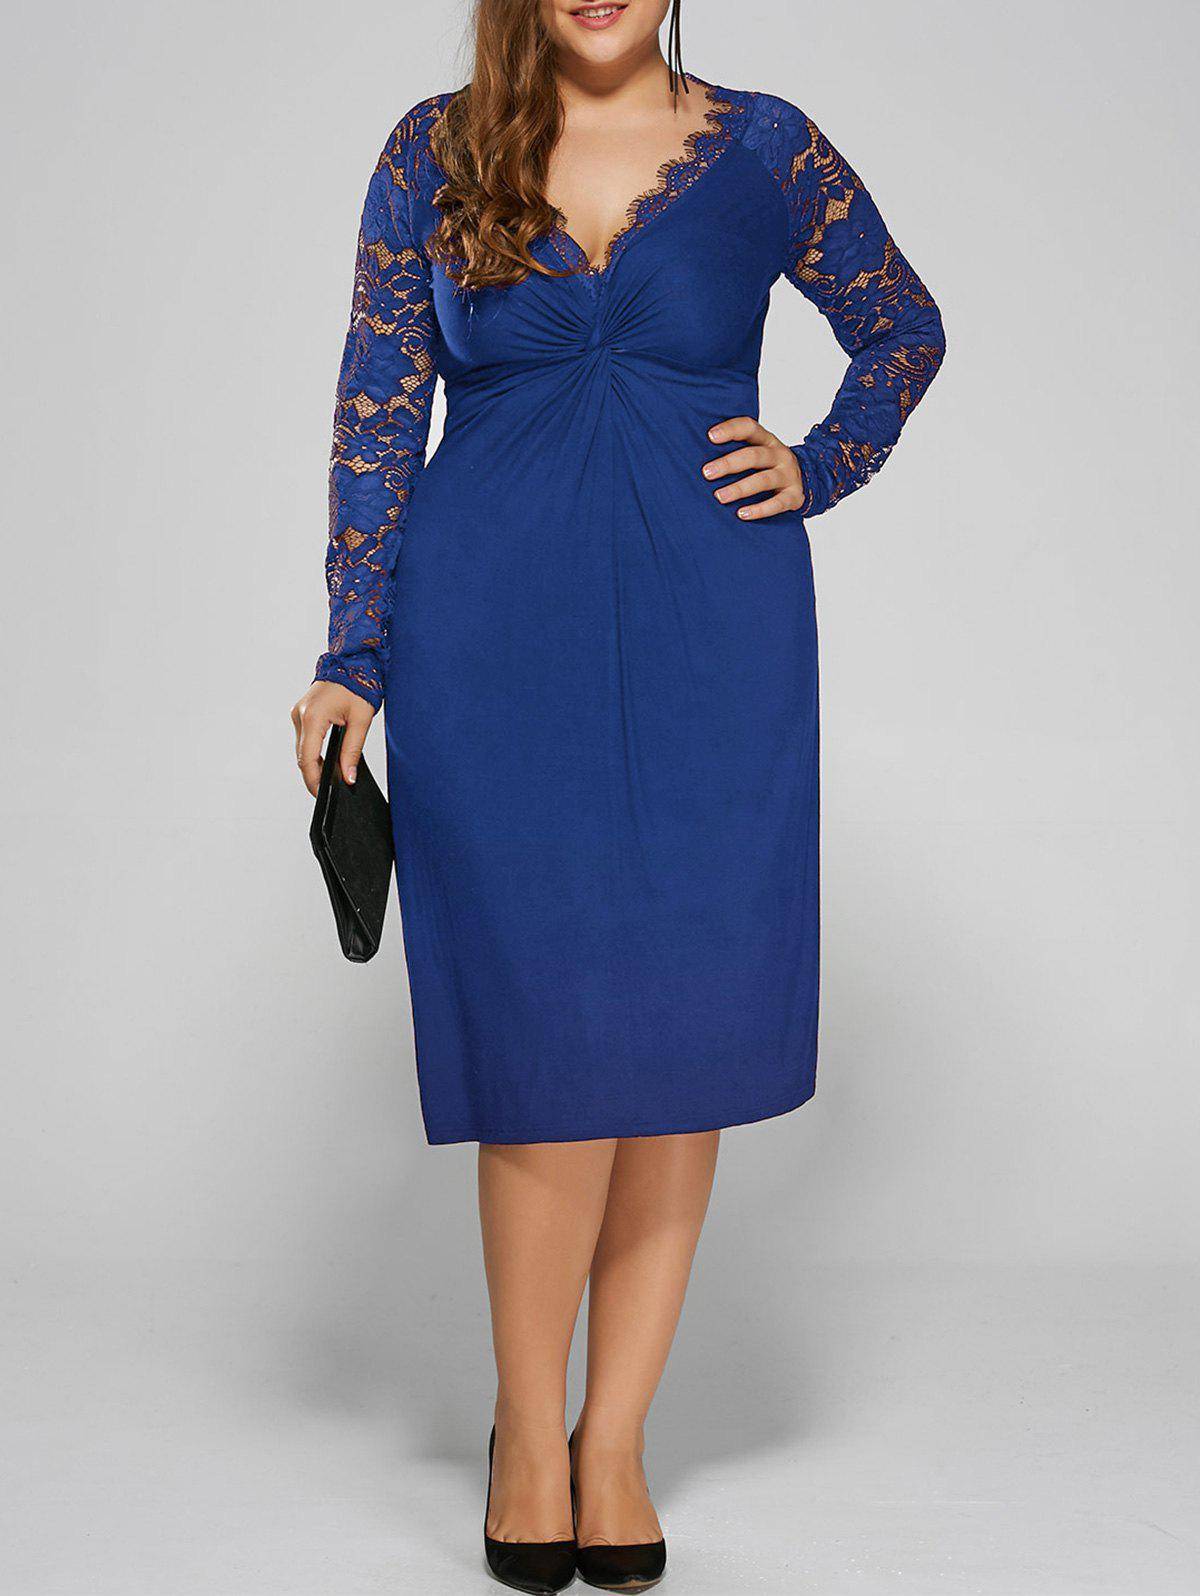 Plus Size Twist Front Lace Insert Fitted Dress - BLUE 2XL